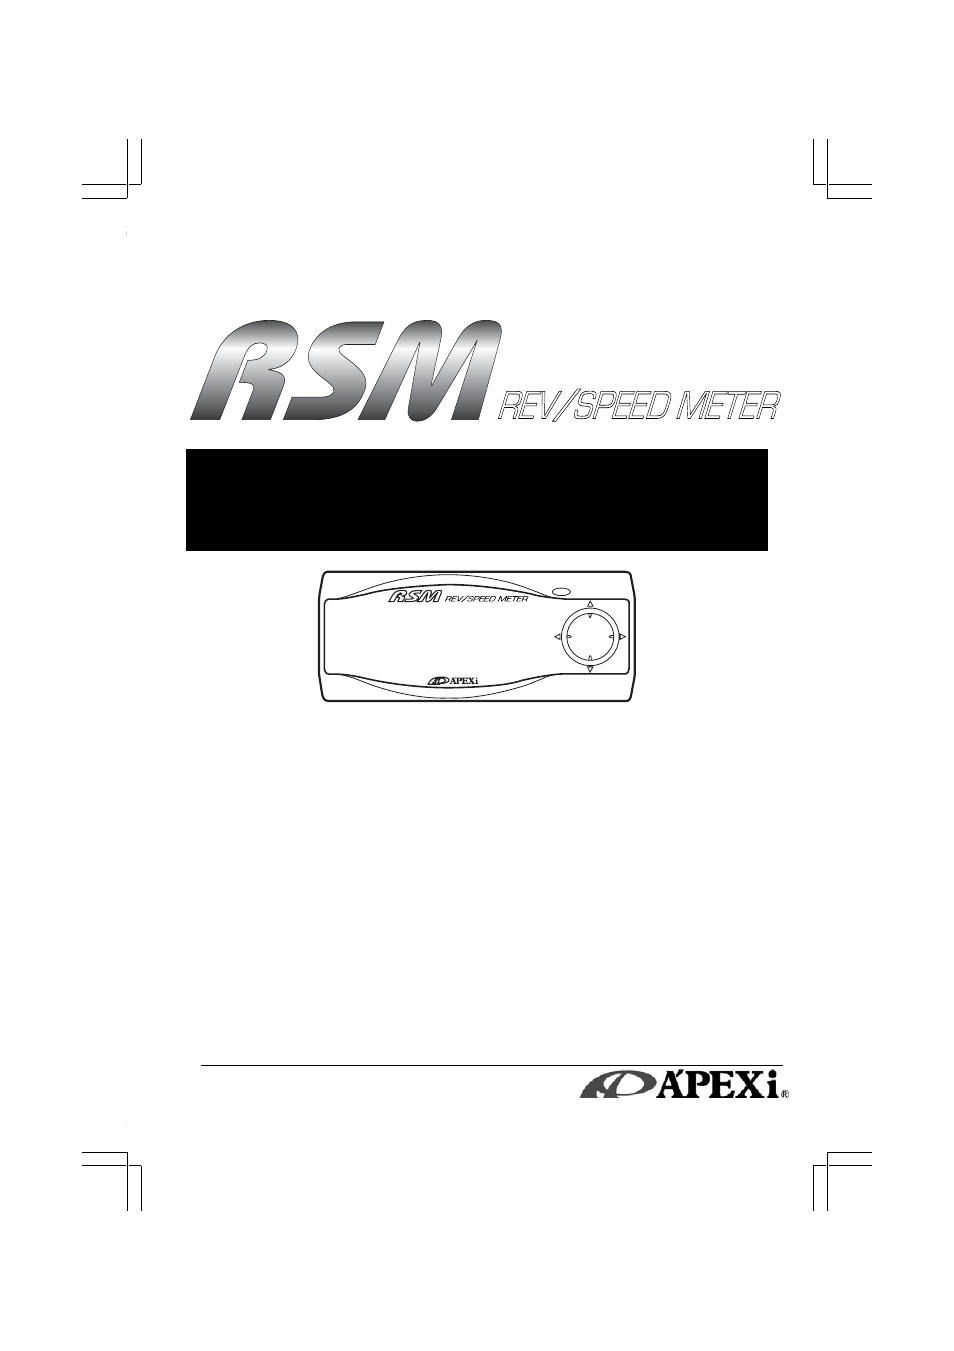 apex digital rev speed meter 405 a912 user manual 44 pages alsoapex digital rev speed meter 405 a912 user manual 44 pages also for rev speed meter 405 a916